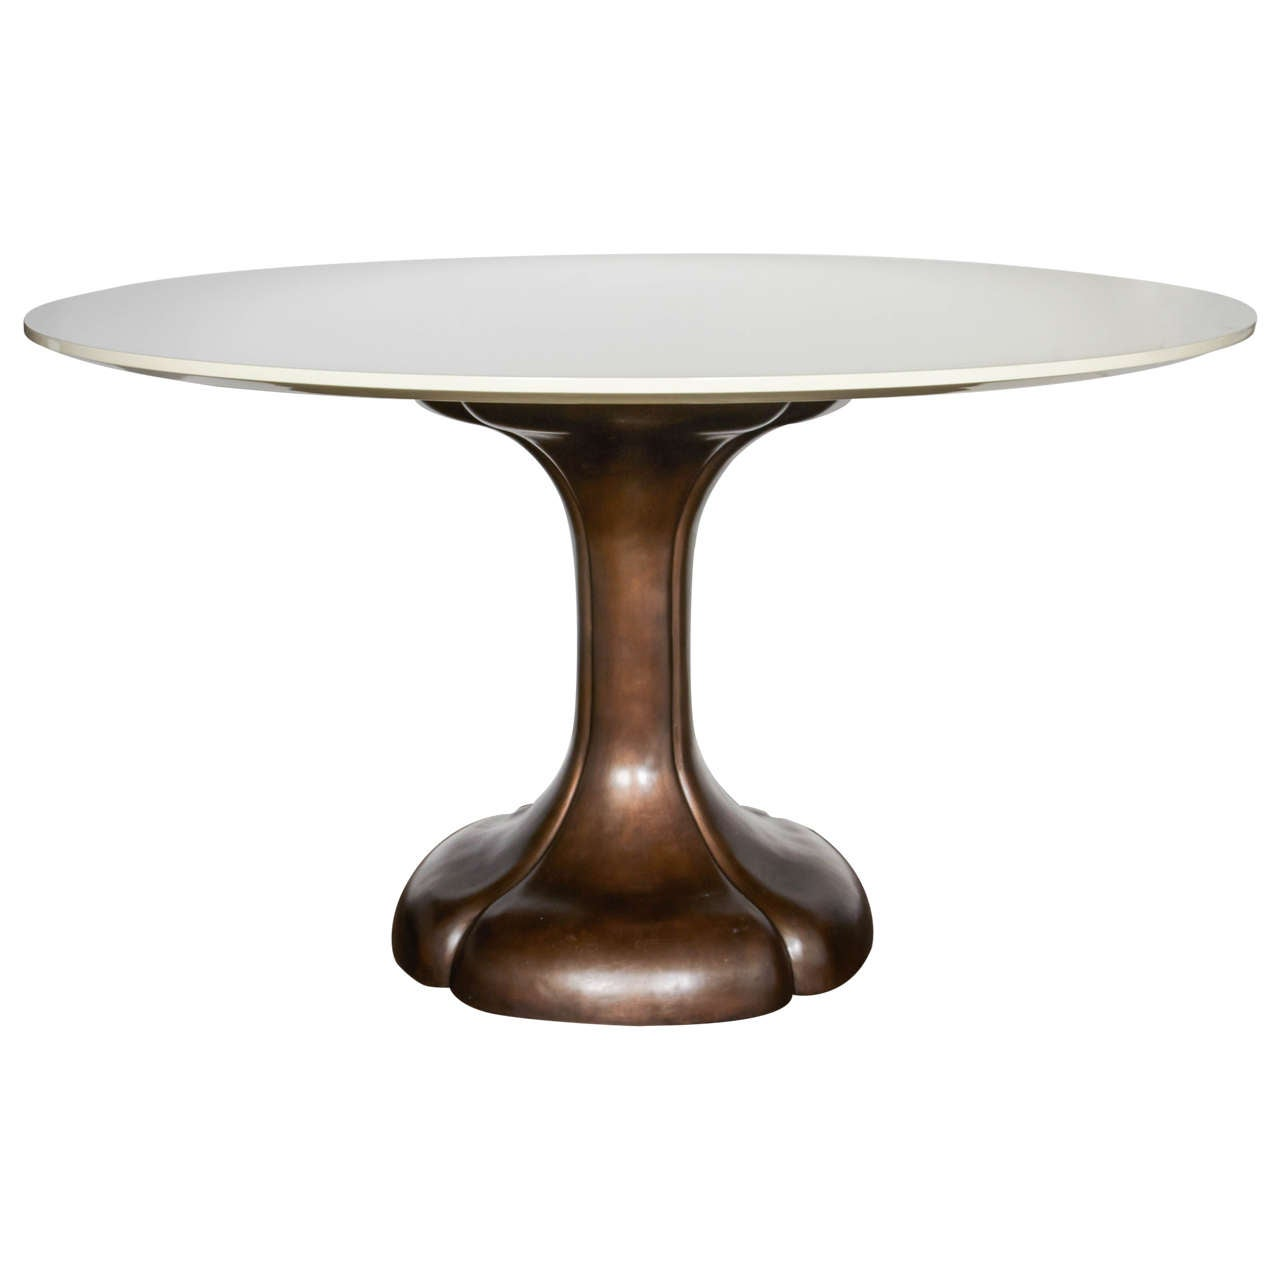 Art nouveau style round dining table with bronze pedestal for Dining room table pedestal bases